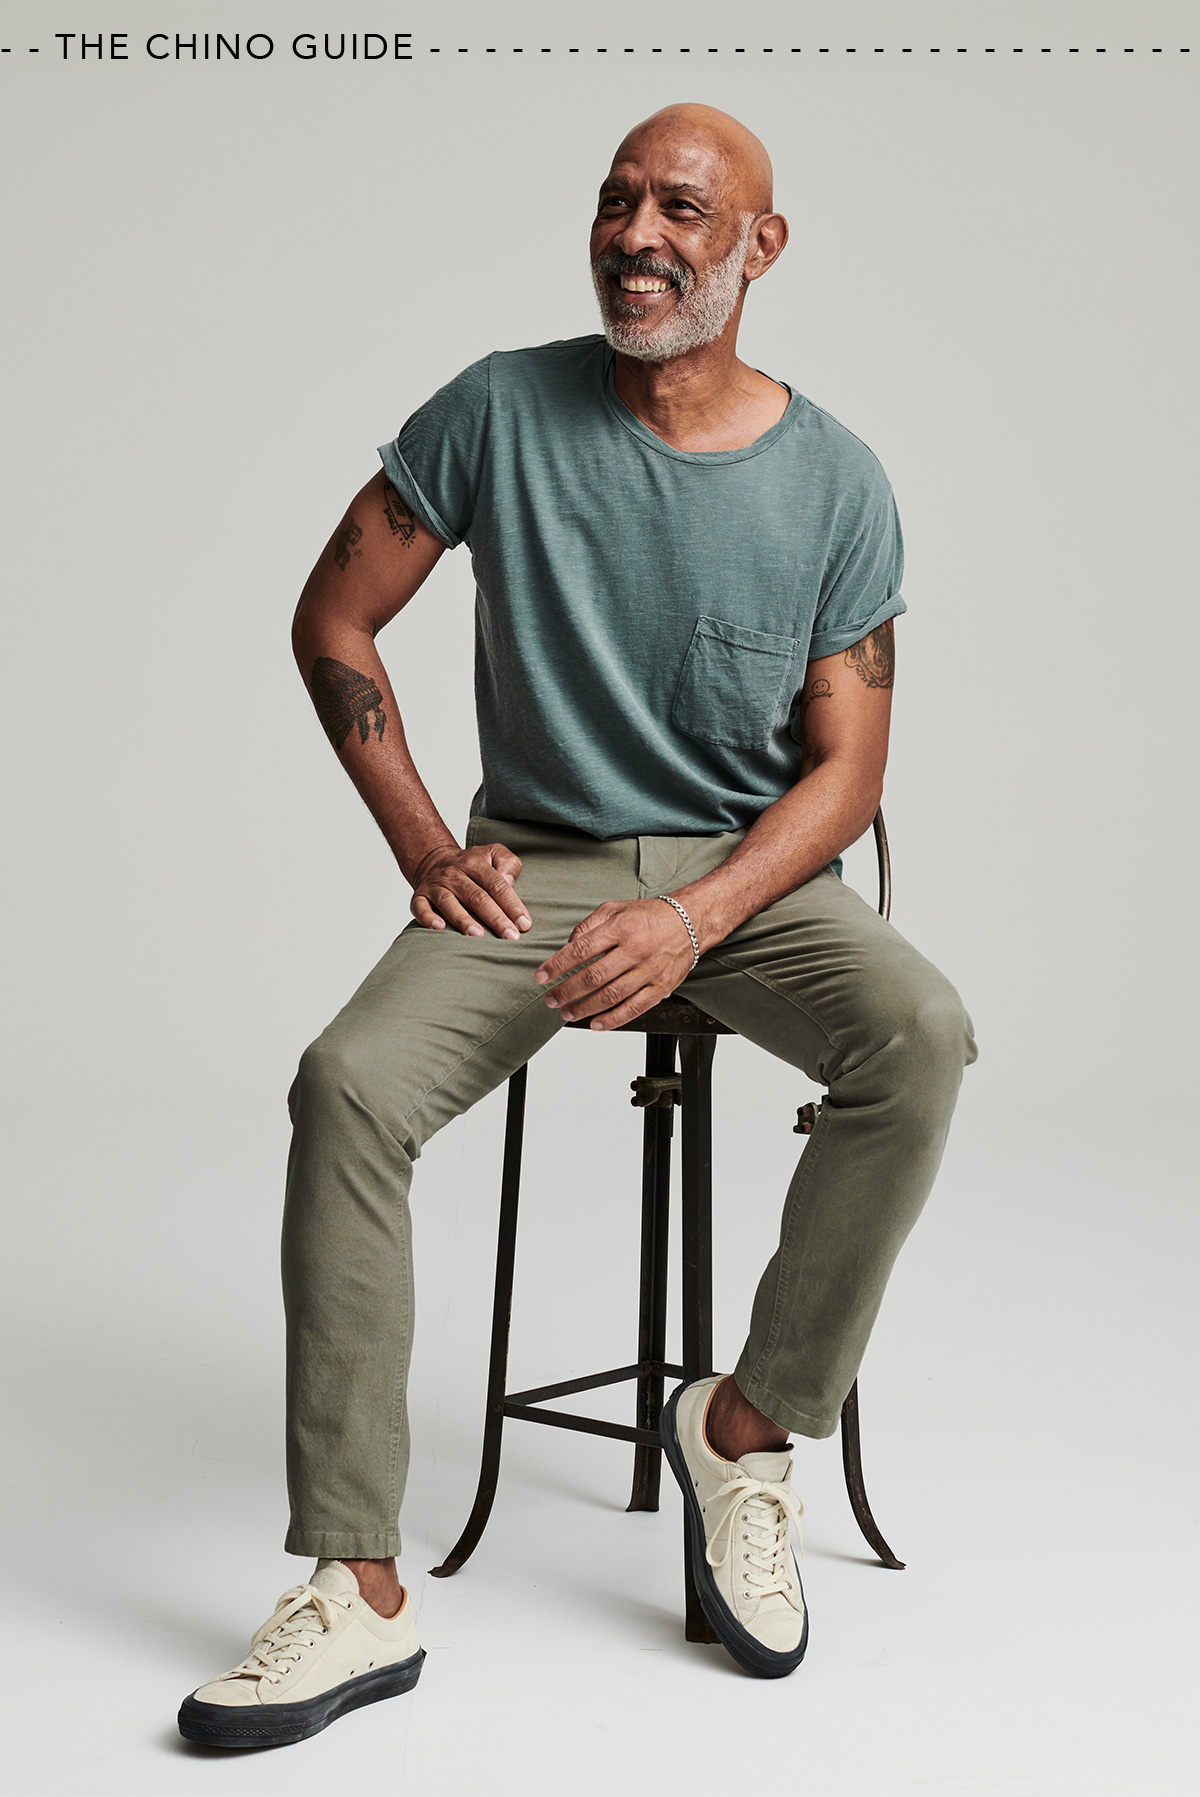 The Chino Guide